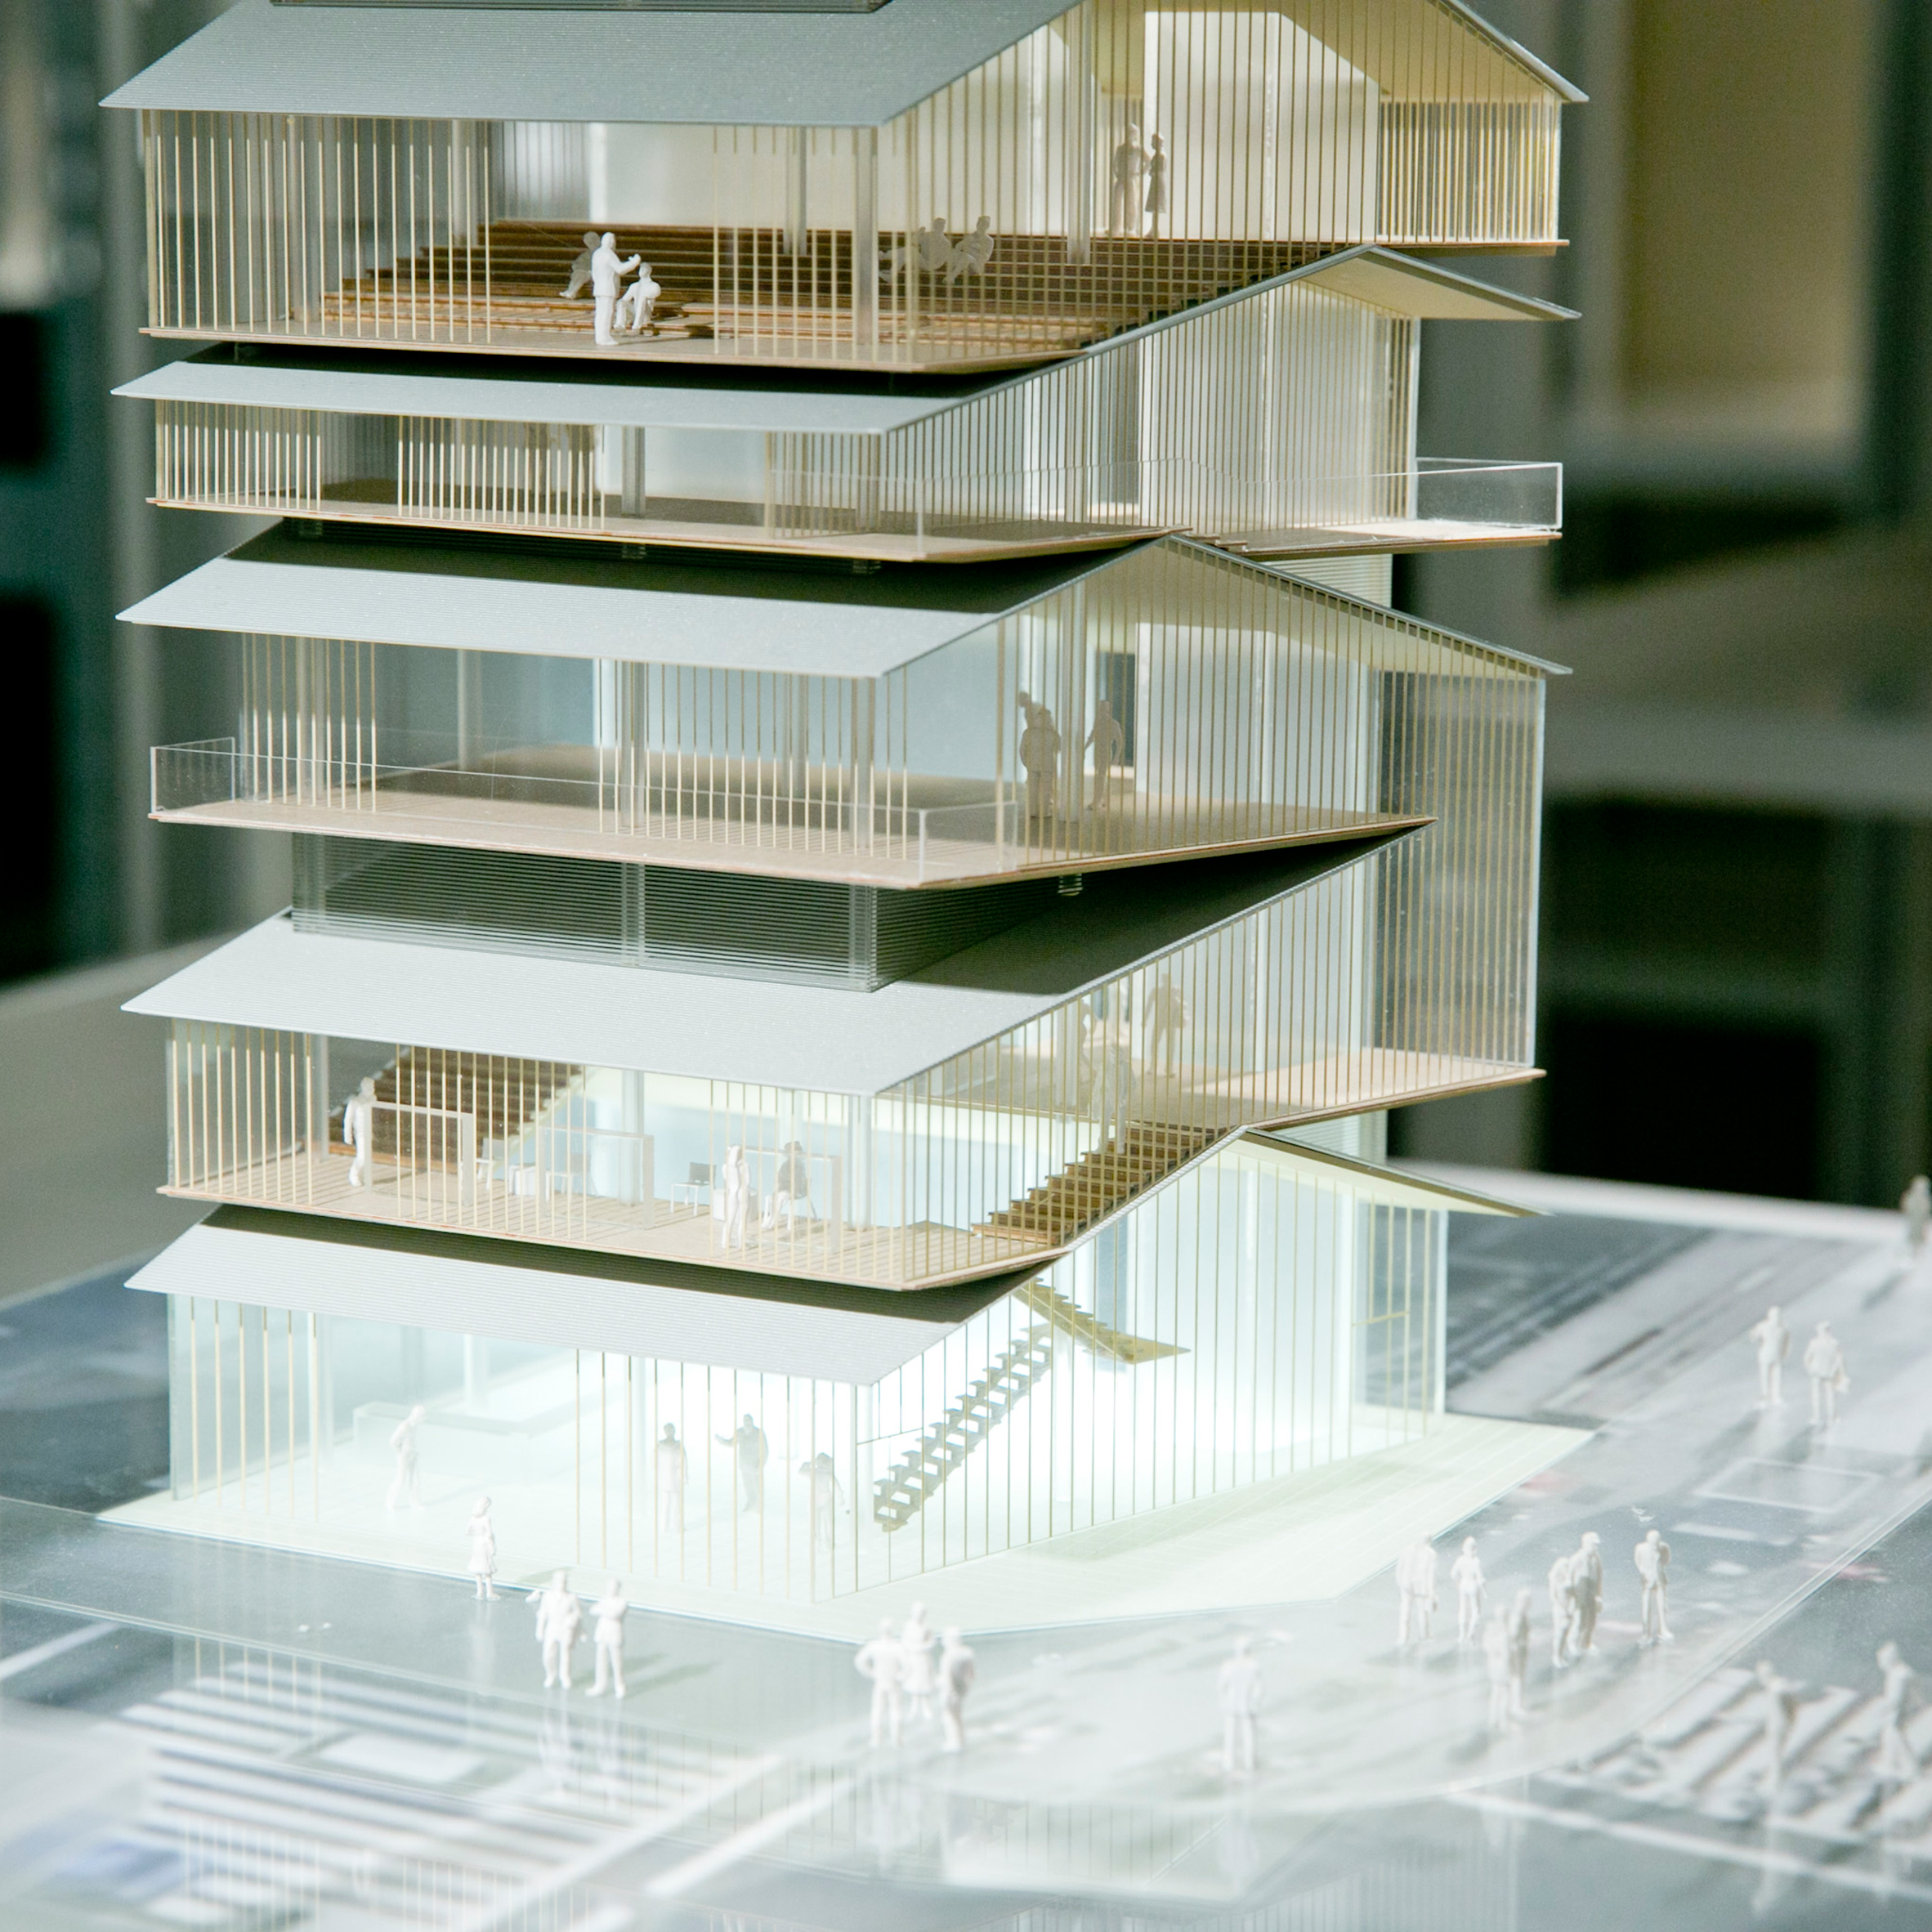 Ordinaire Archi Depot Museum Director Picks His Five Favourite Architectural Models